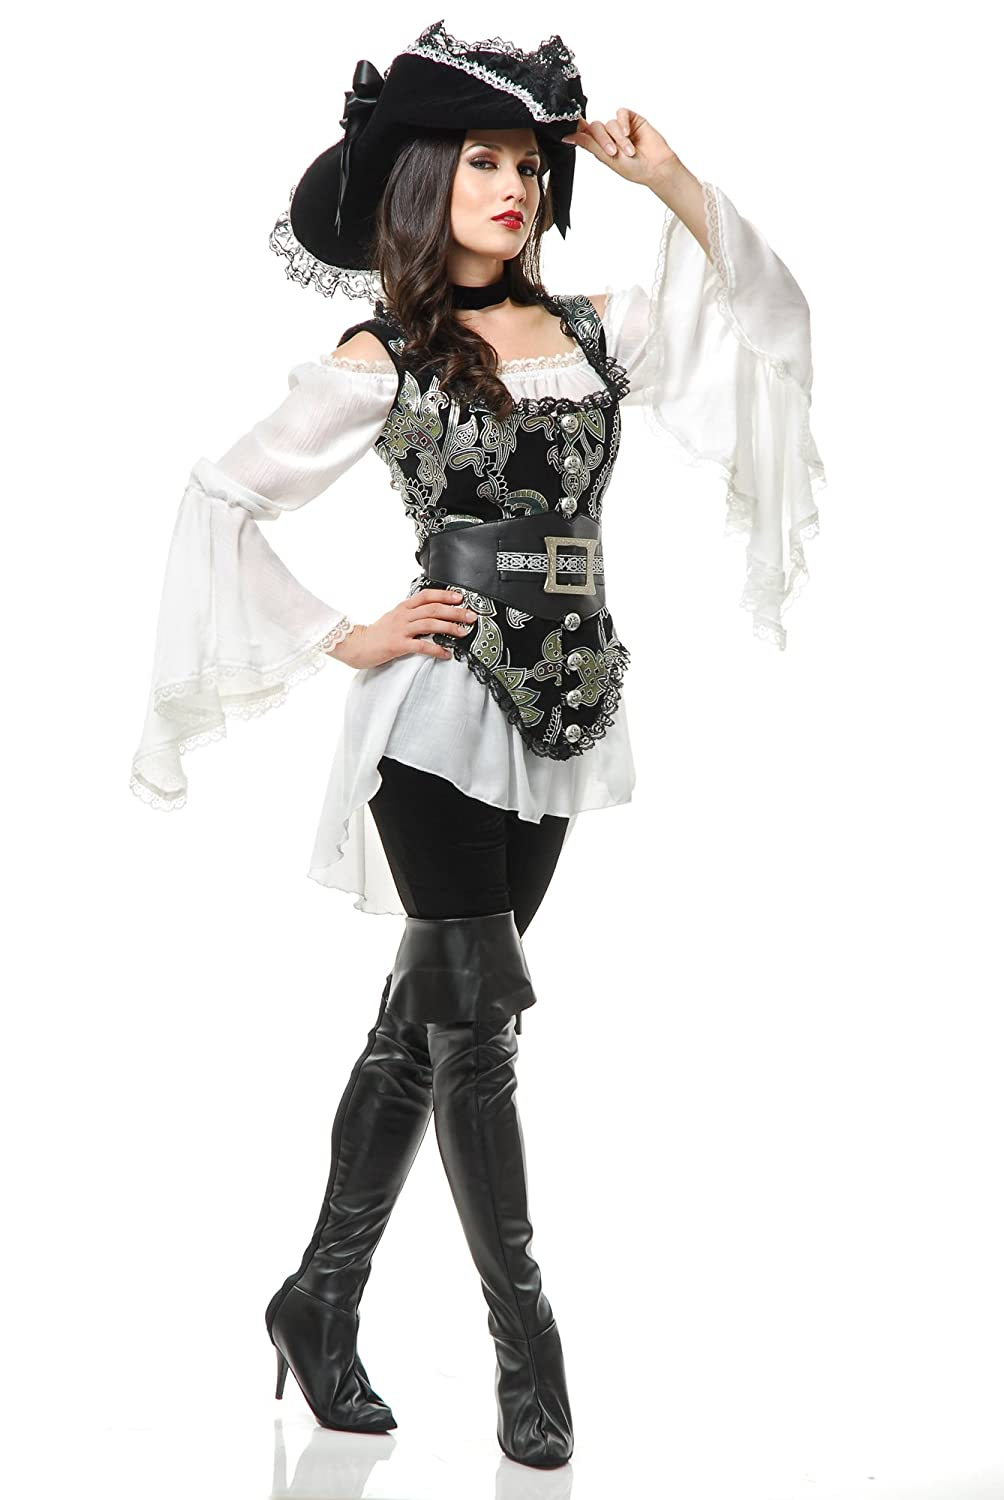 Women's Pirate Lady Black & Silver Vest, Blouse, and Belt Costume Set - DeluxeAdultCostumes.com